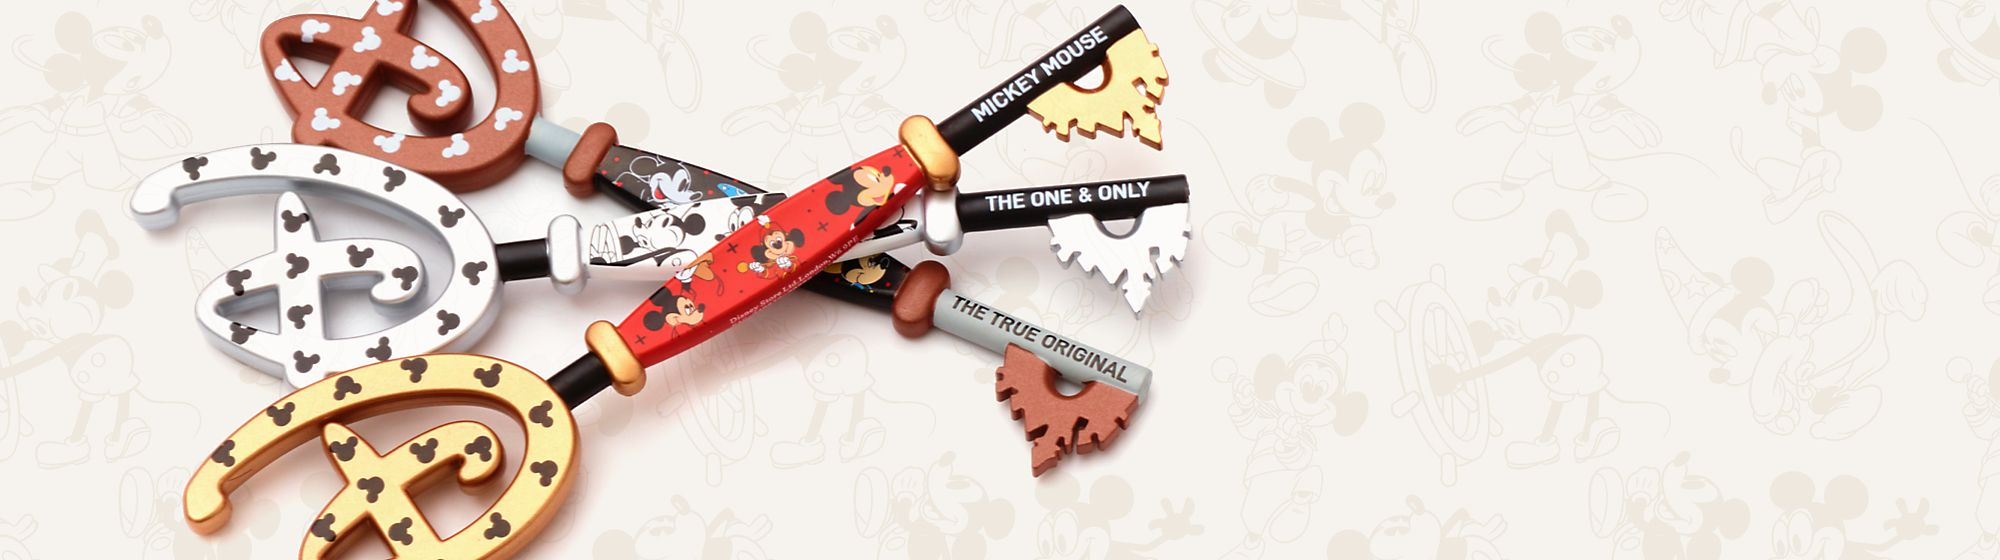 Imagination Keys Unlock the magic with our Imagination Keys SHOP NOW